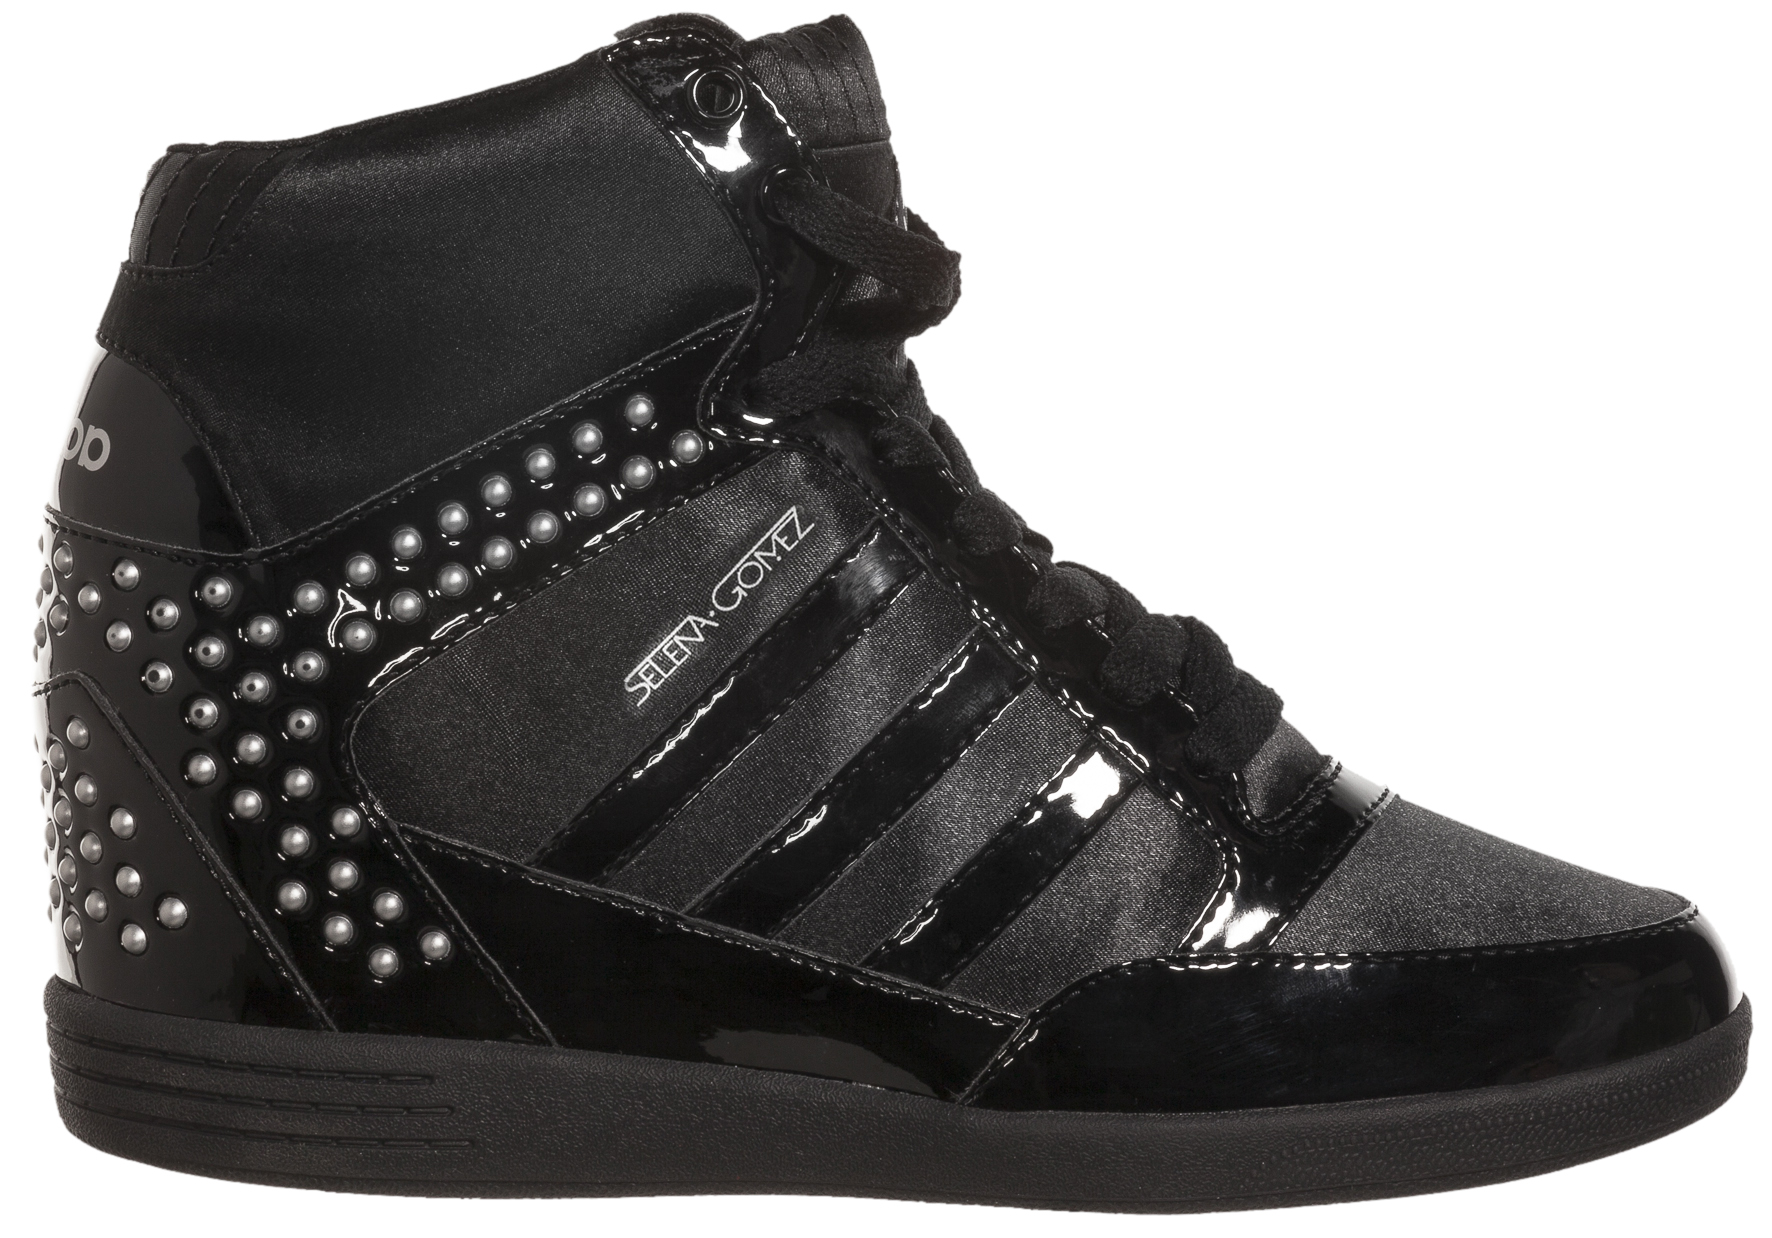 the best attitude dca54 a5802 Adidas Neo Sneakers - Svarta 279894 feetfirst.se